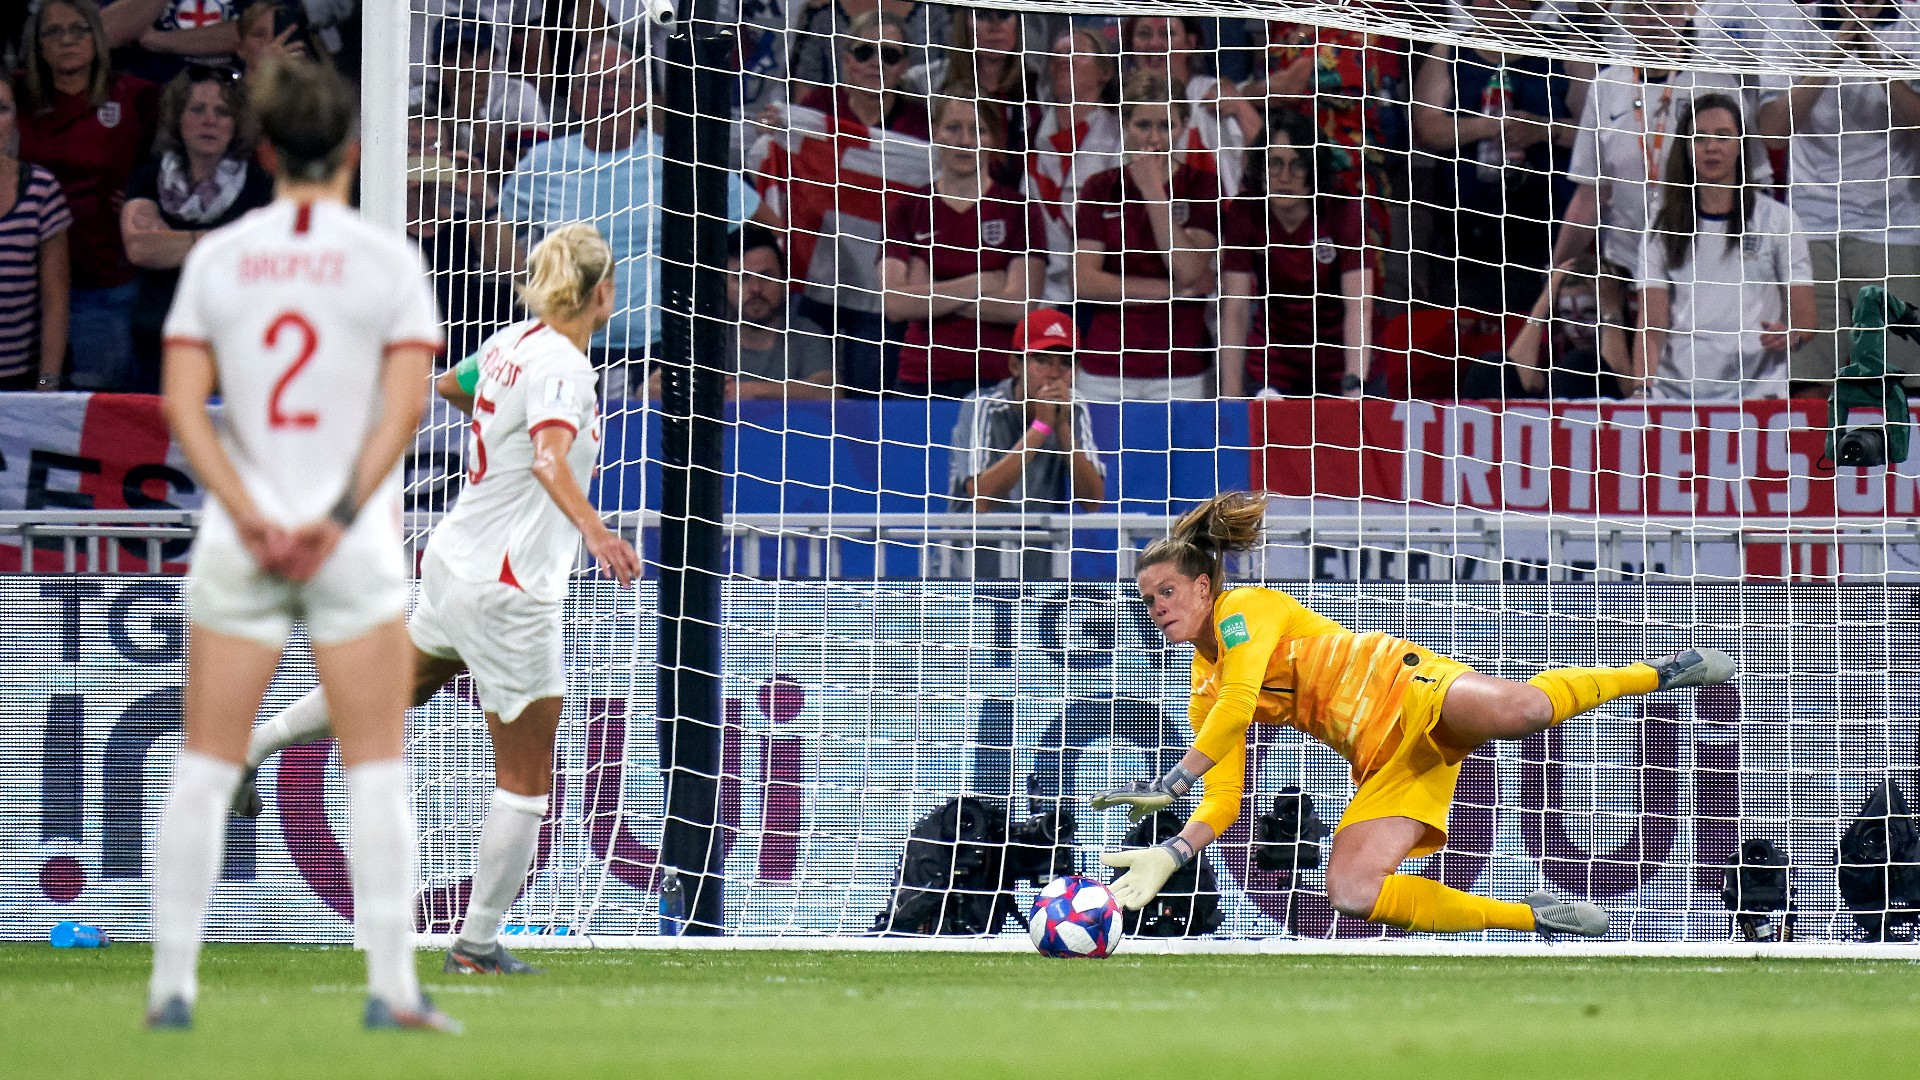 """USWNT goalkeeper Alyssa Naeher is the heroine of penalty saves in Olympic QF: """"She's the reason we're still in this"""""""